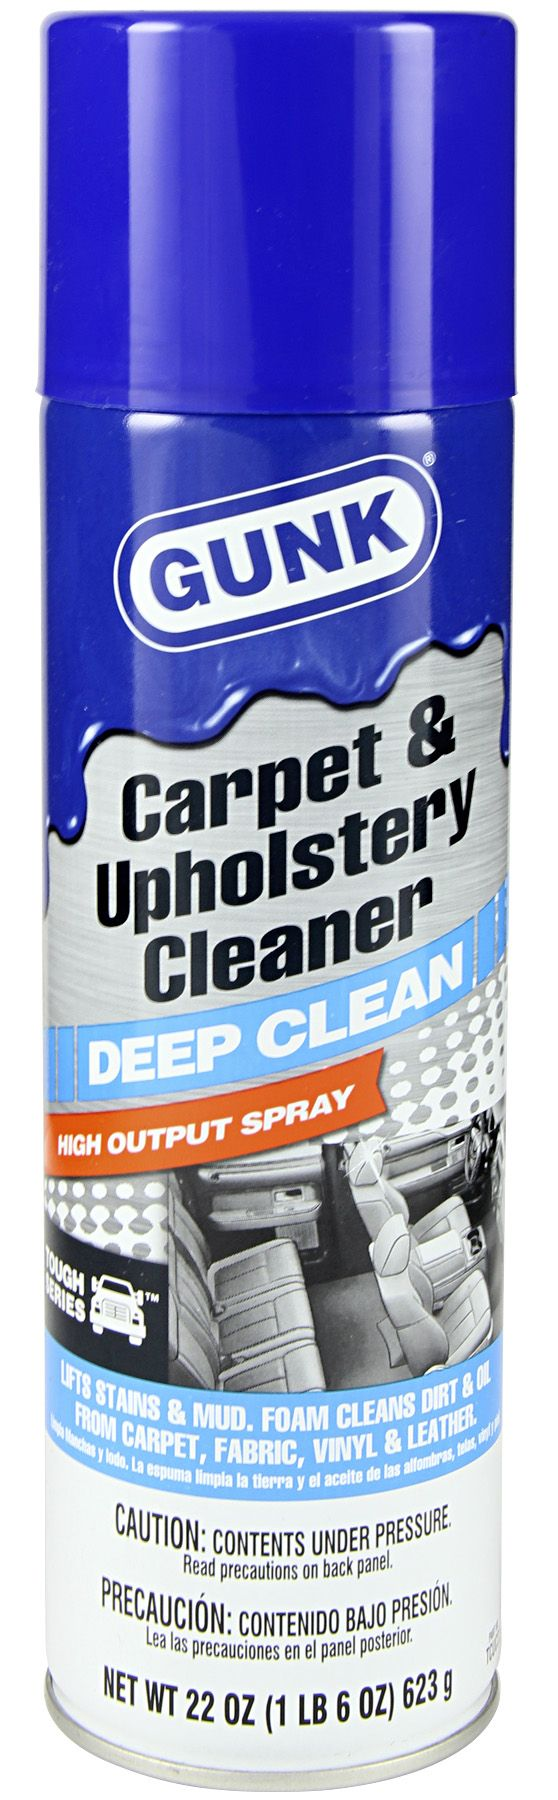 Carpet & Upholstery Cleaner - Foamy Image